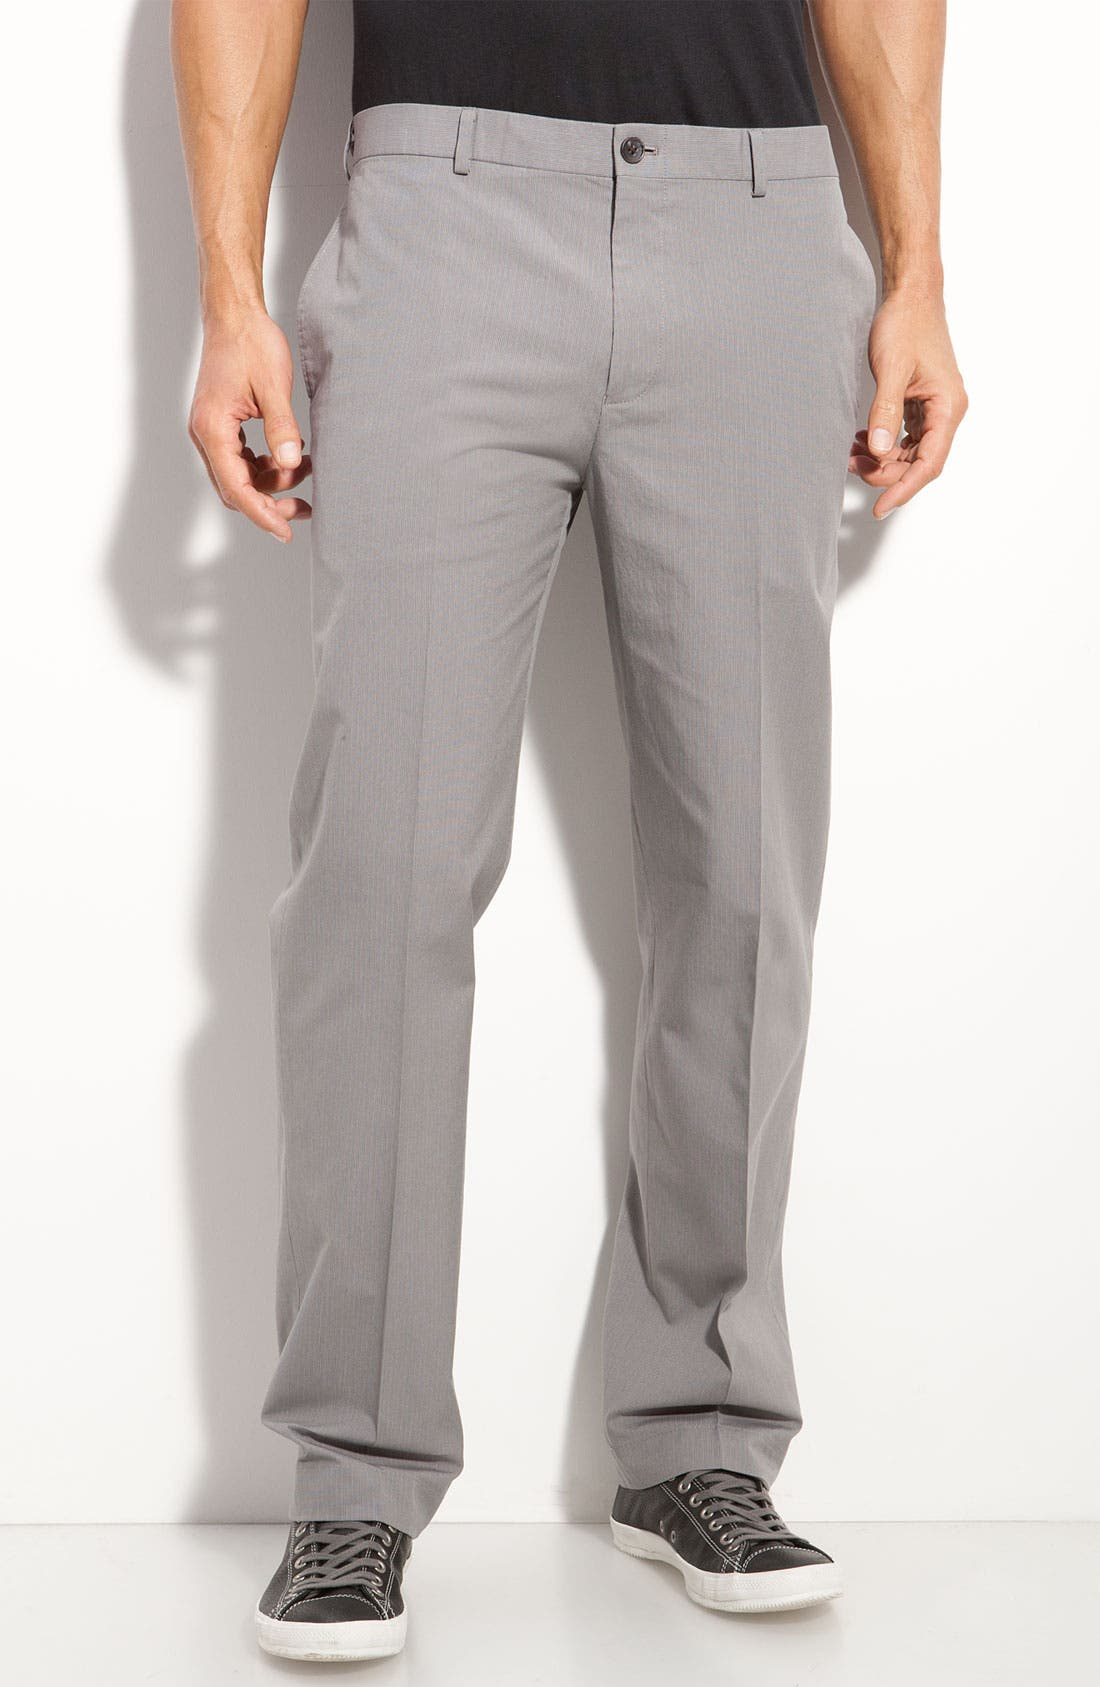 WALLIN & BROS. Flat Front Stripe Pants, Main, color, 020